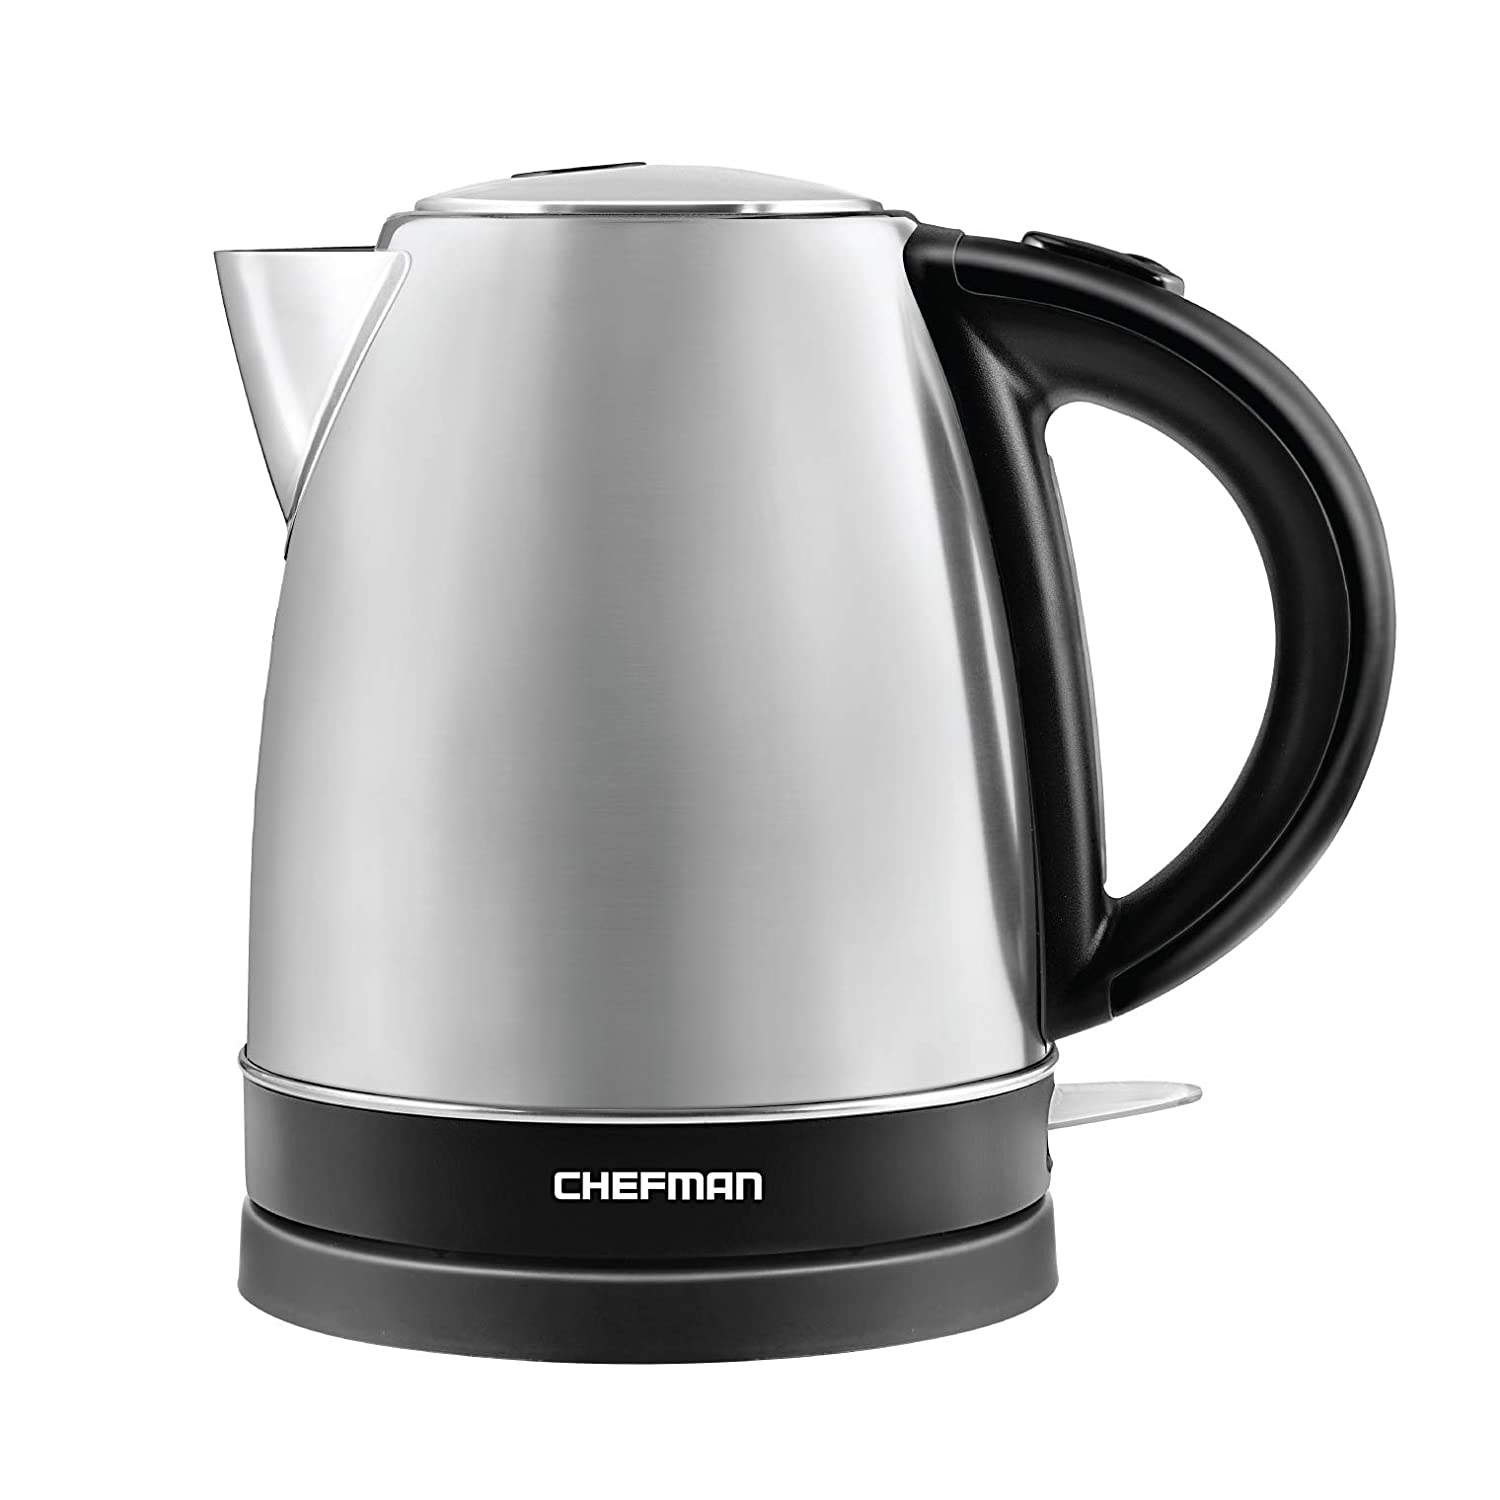 Chefman Stainless Steel Electric Kettle w/ 360° Swivel Base, Auto Shut Off & Boil Dry Protection, BPA-Free Interior and Cool-Touch Handle, 7+ Cup Capacity, 1.7 Liter/1.8 Quart